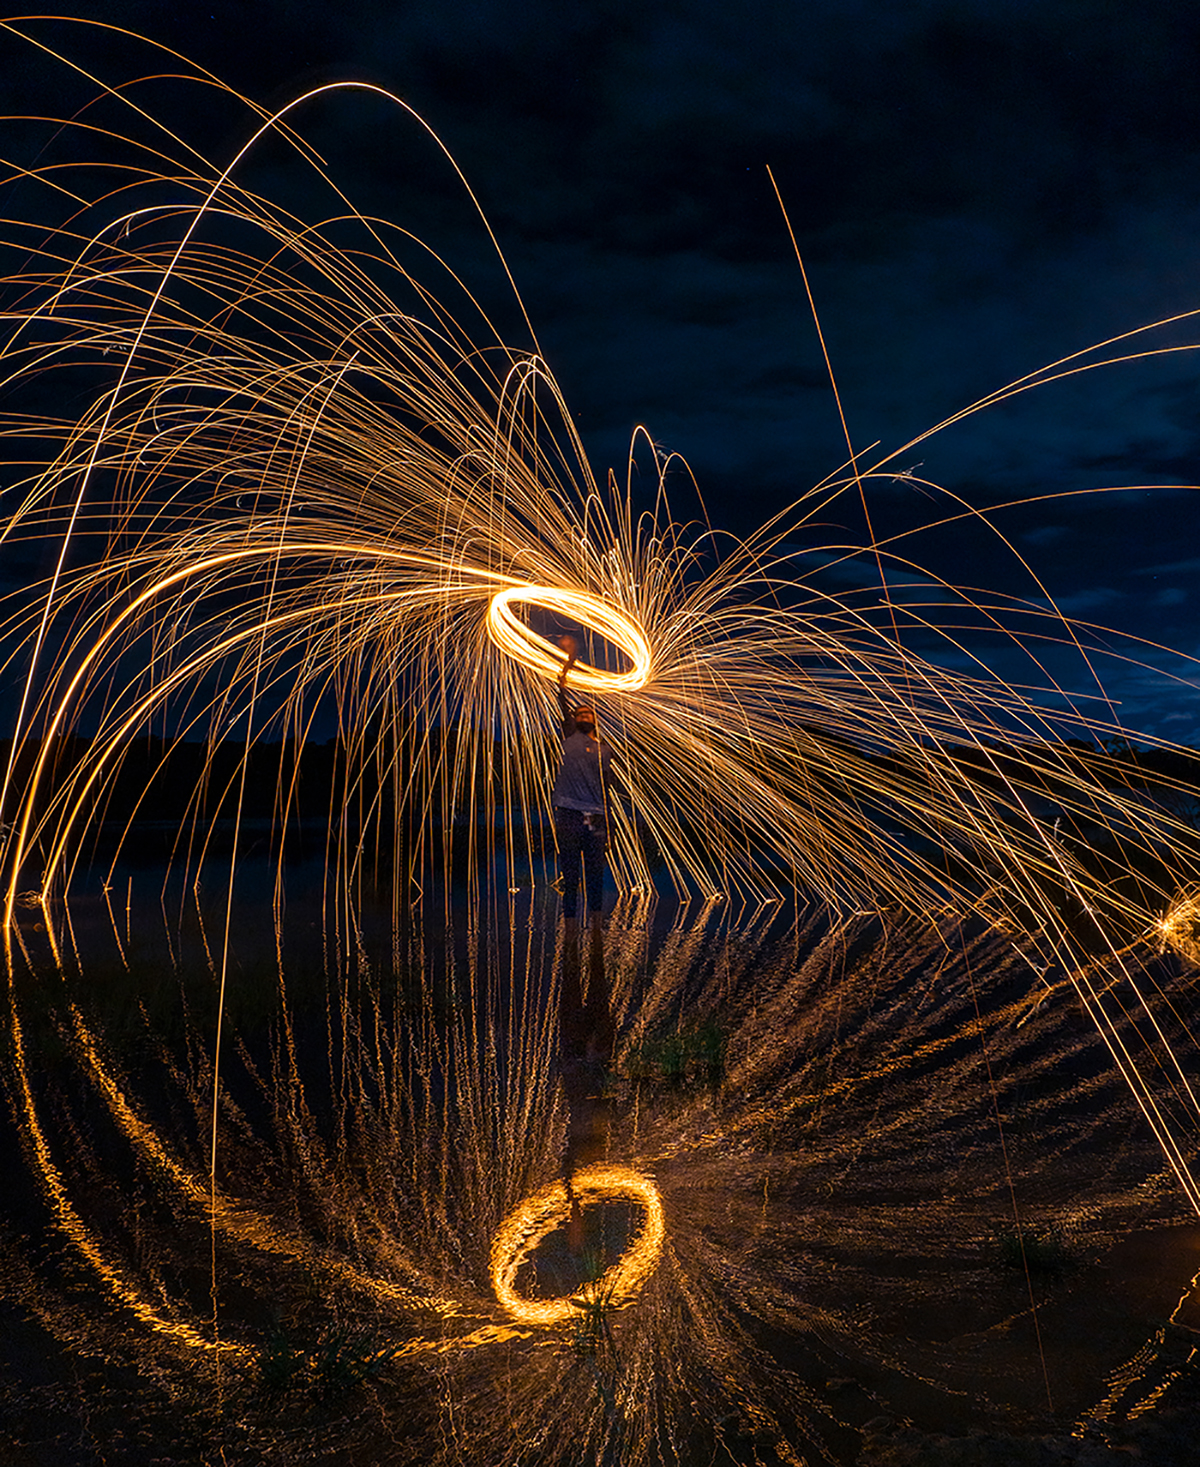 A photo taken at night at a lake in Bengaluru, India. A friend is wielding a rope of steel wool on fire. He is standing on the banks of the lake and the brilliant luminescence of the steel wool is reflected over the water.